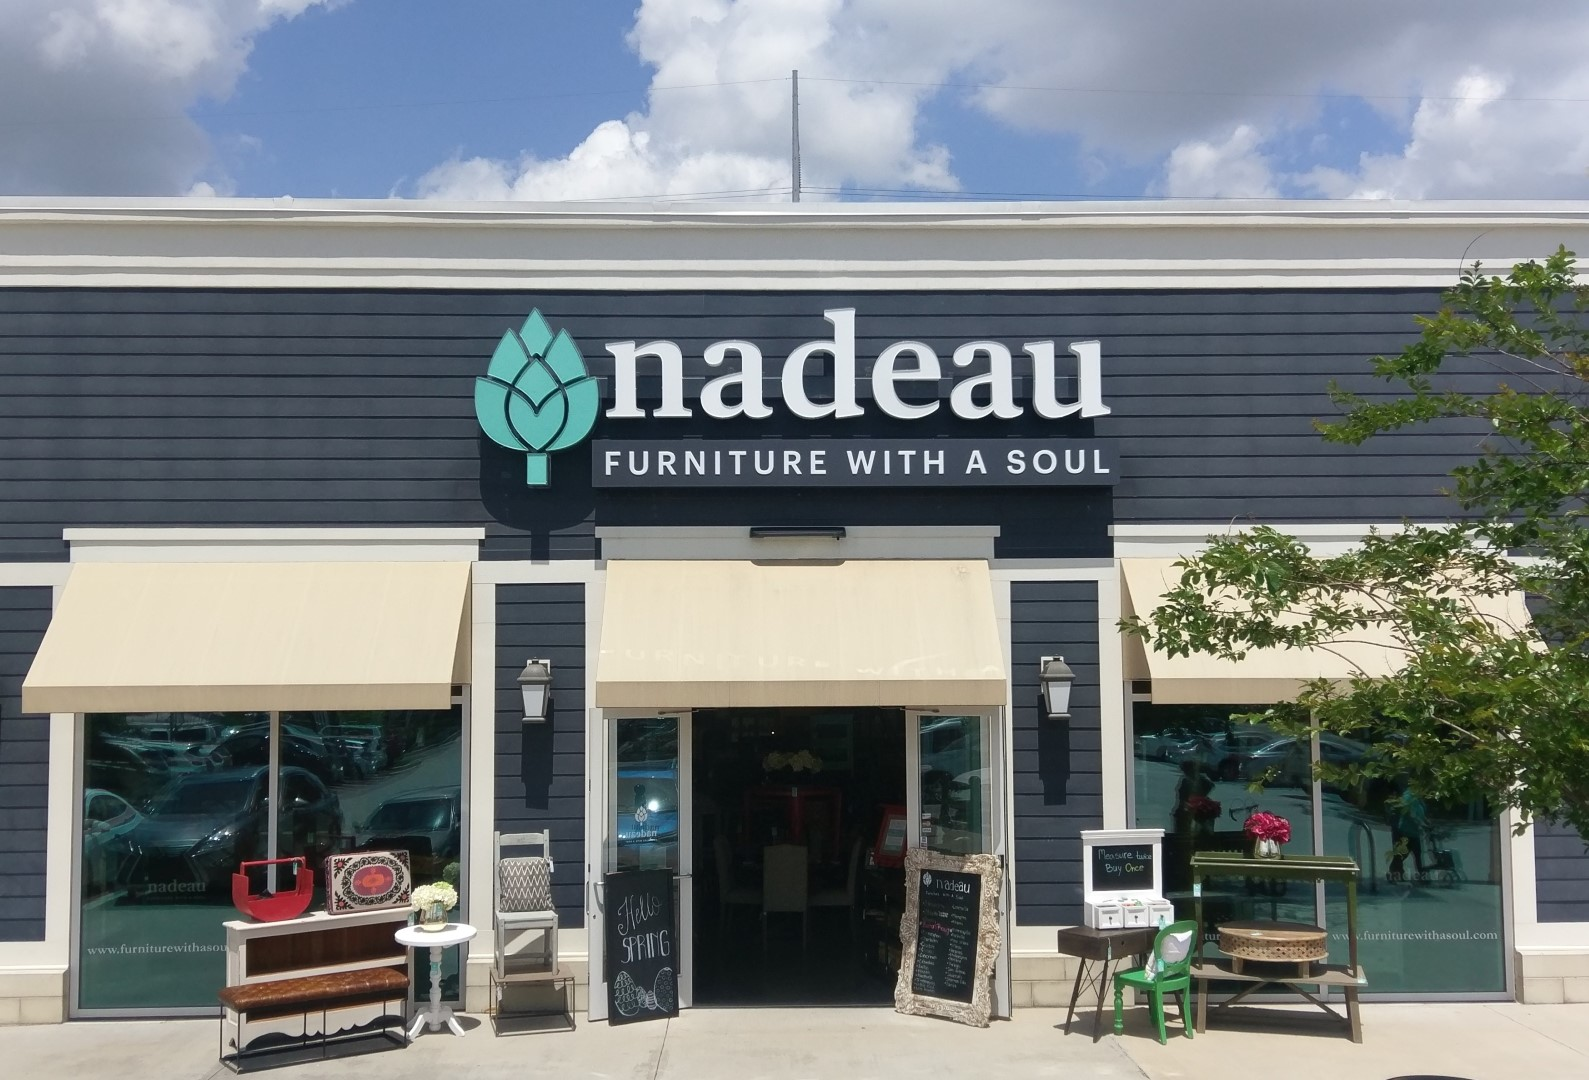 Nadeau - Furniture with a Soul - Baton Rouge